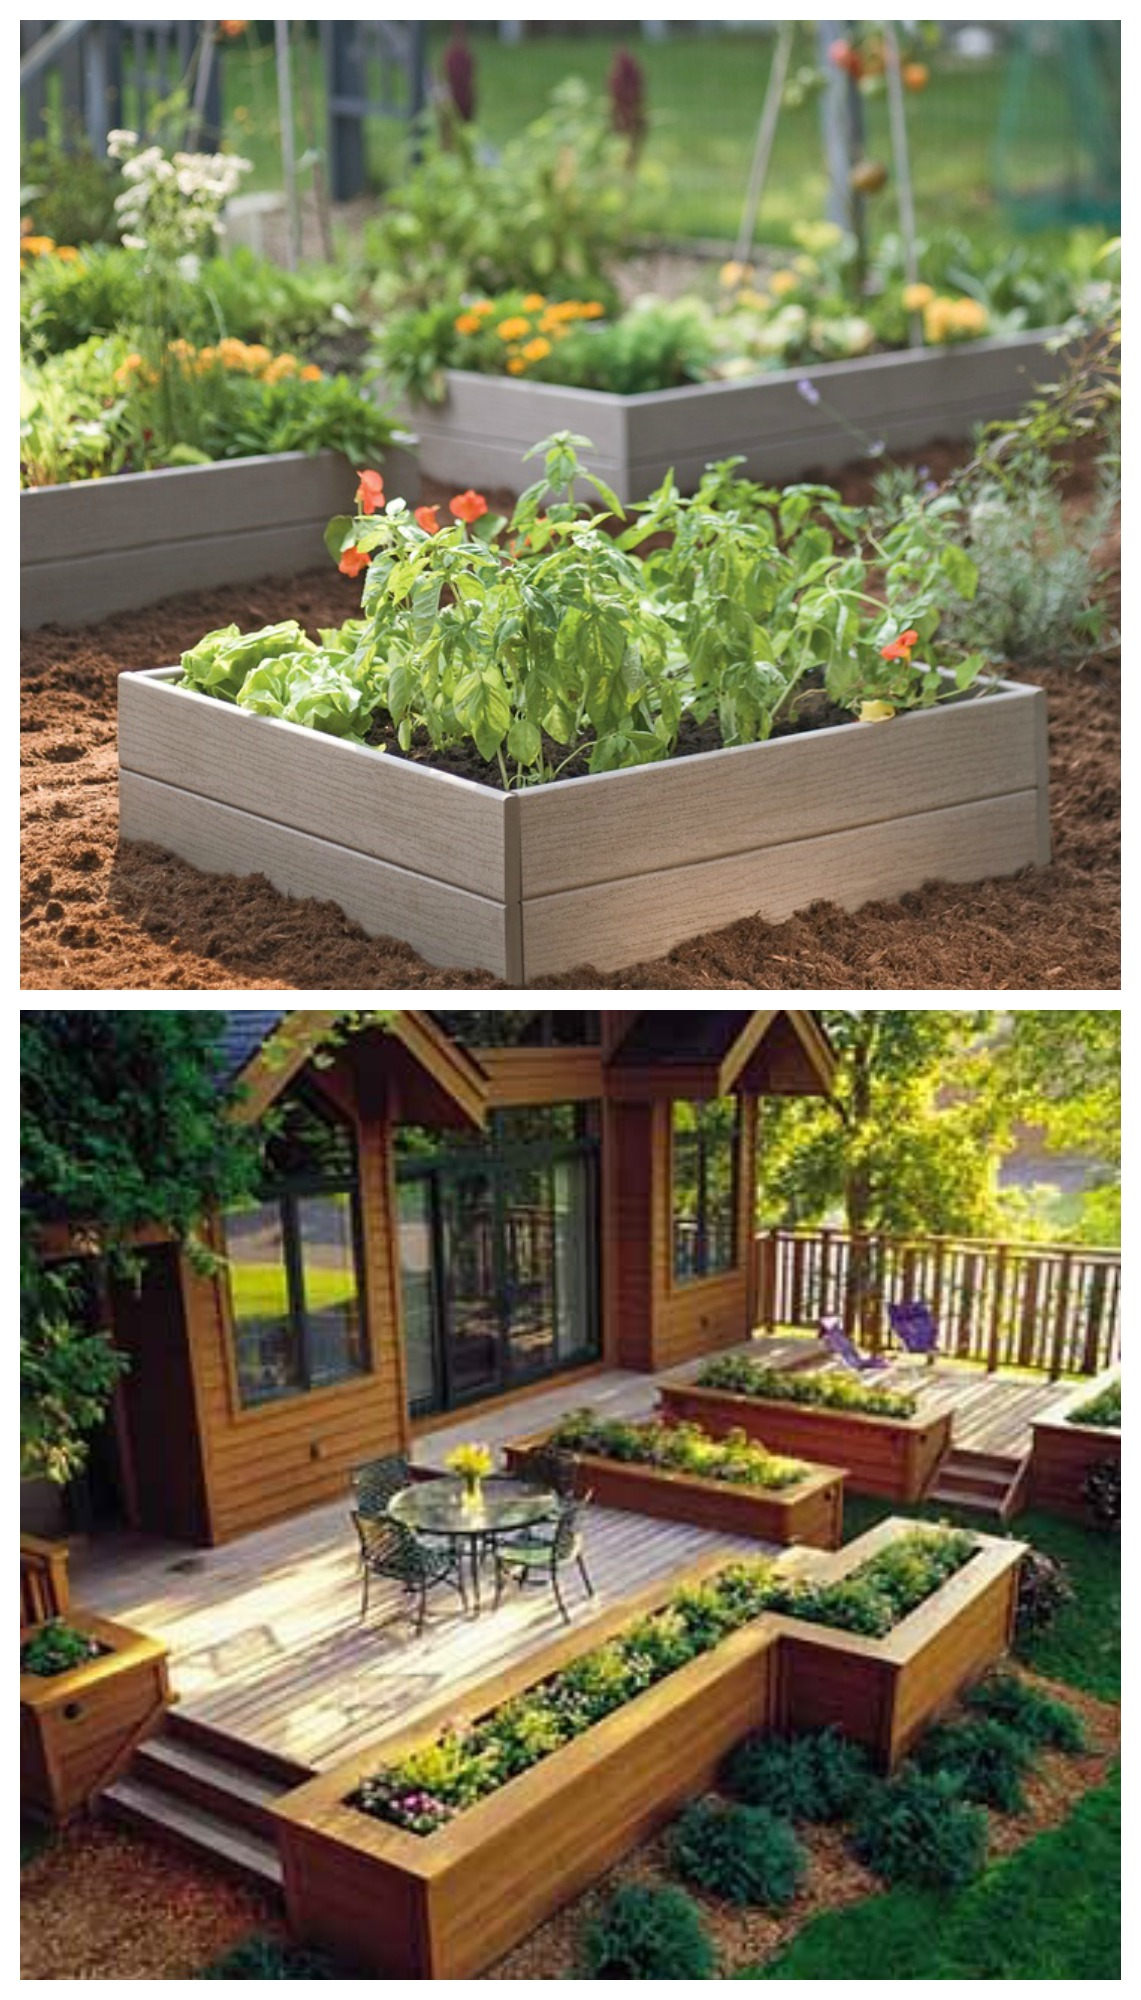 diy-raised-garden.jpg